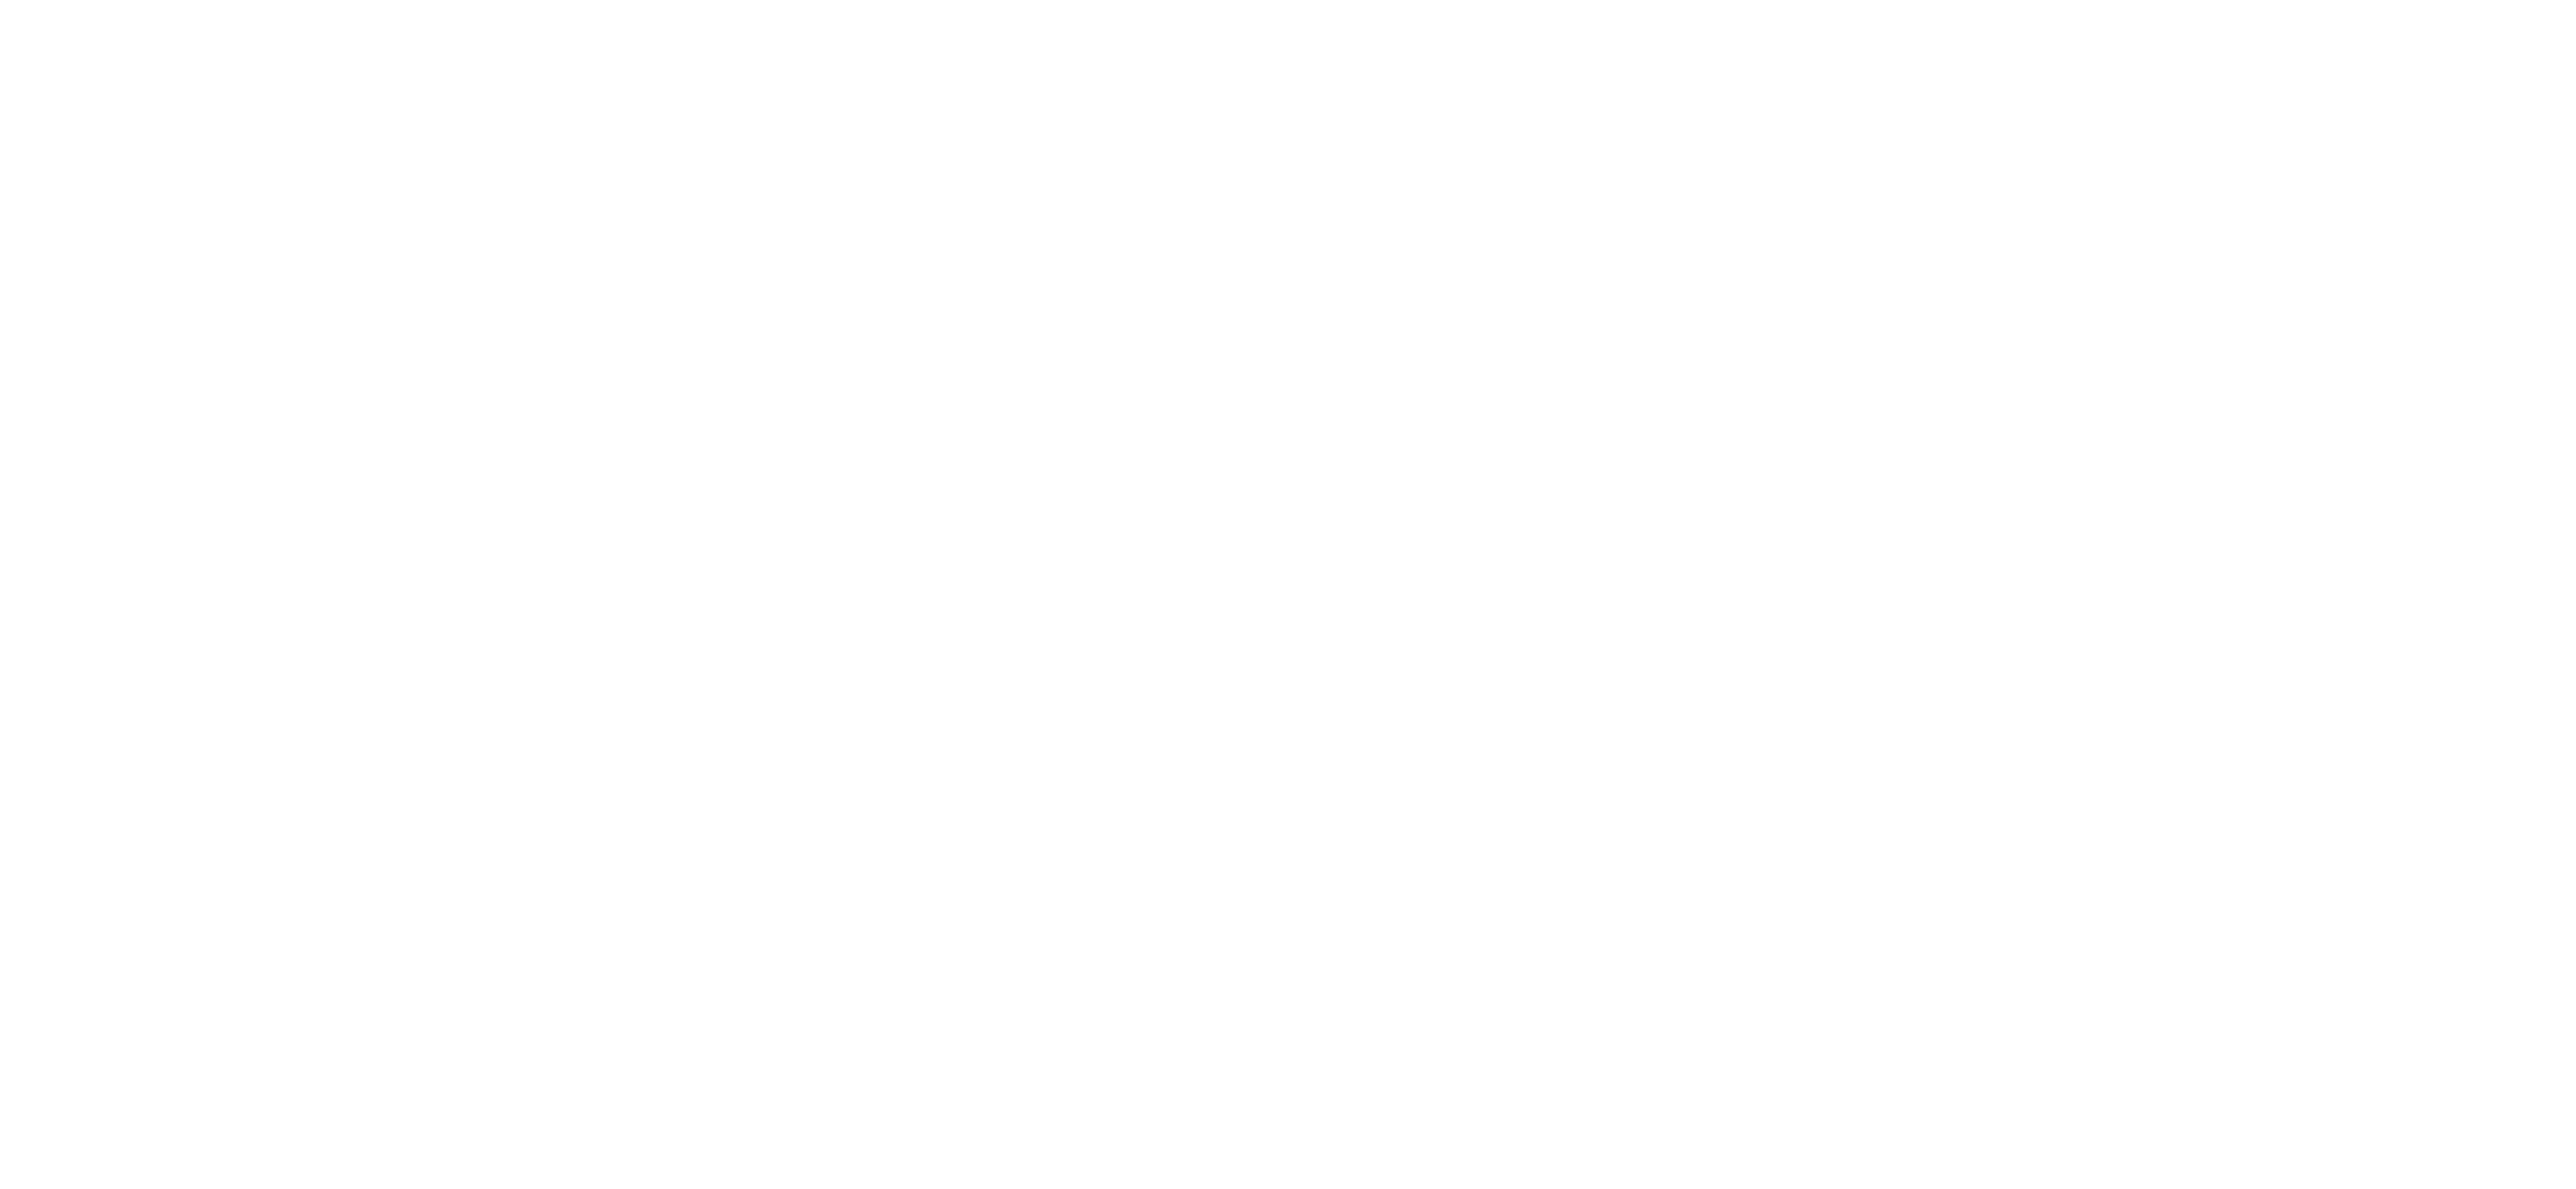 Fulcrum Real Estate Services Logo